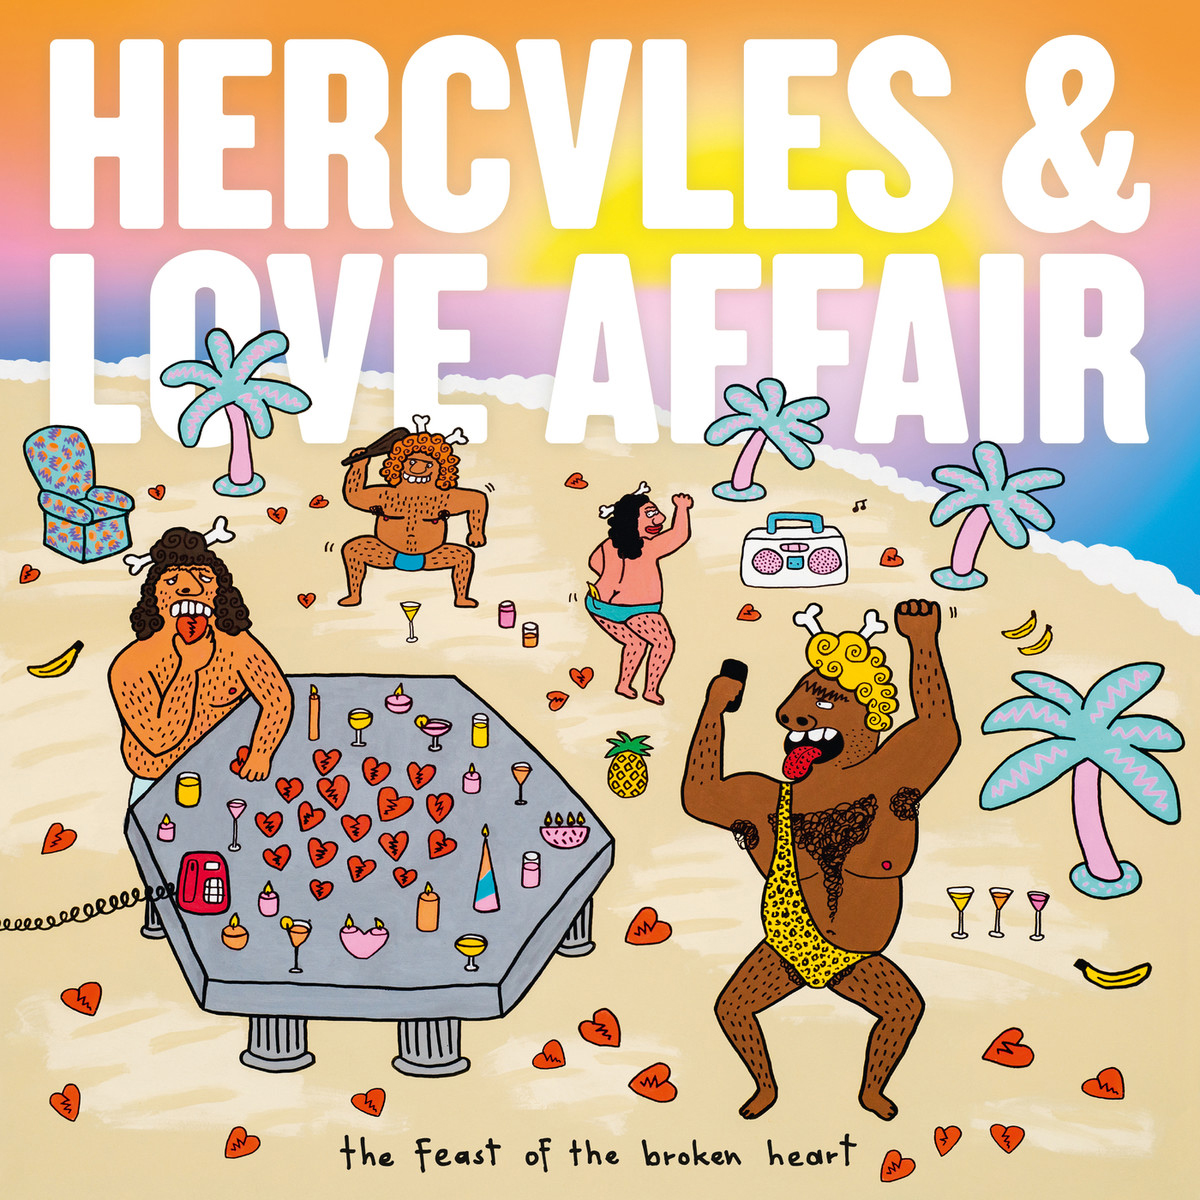 Hercules and Love Affair, The Feast of the Broken Heart